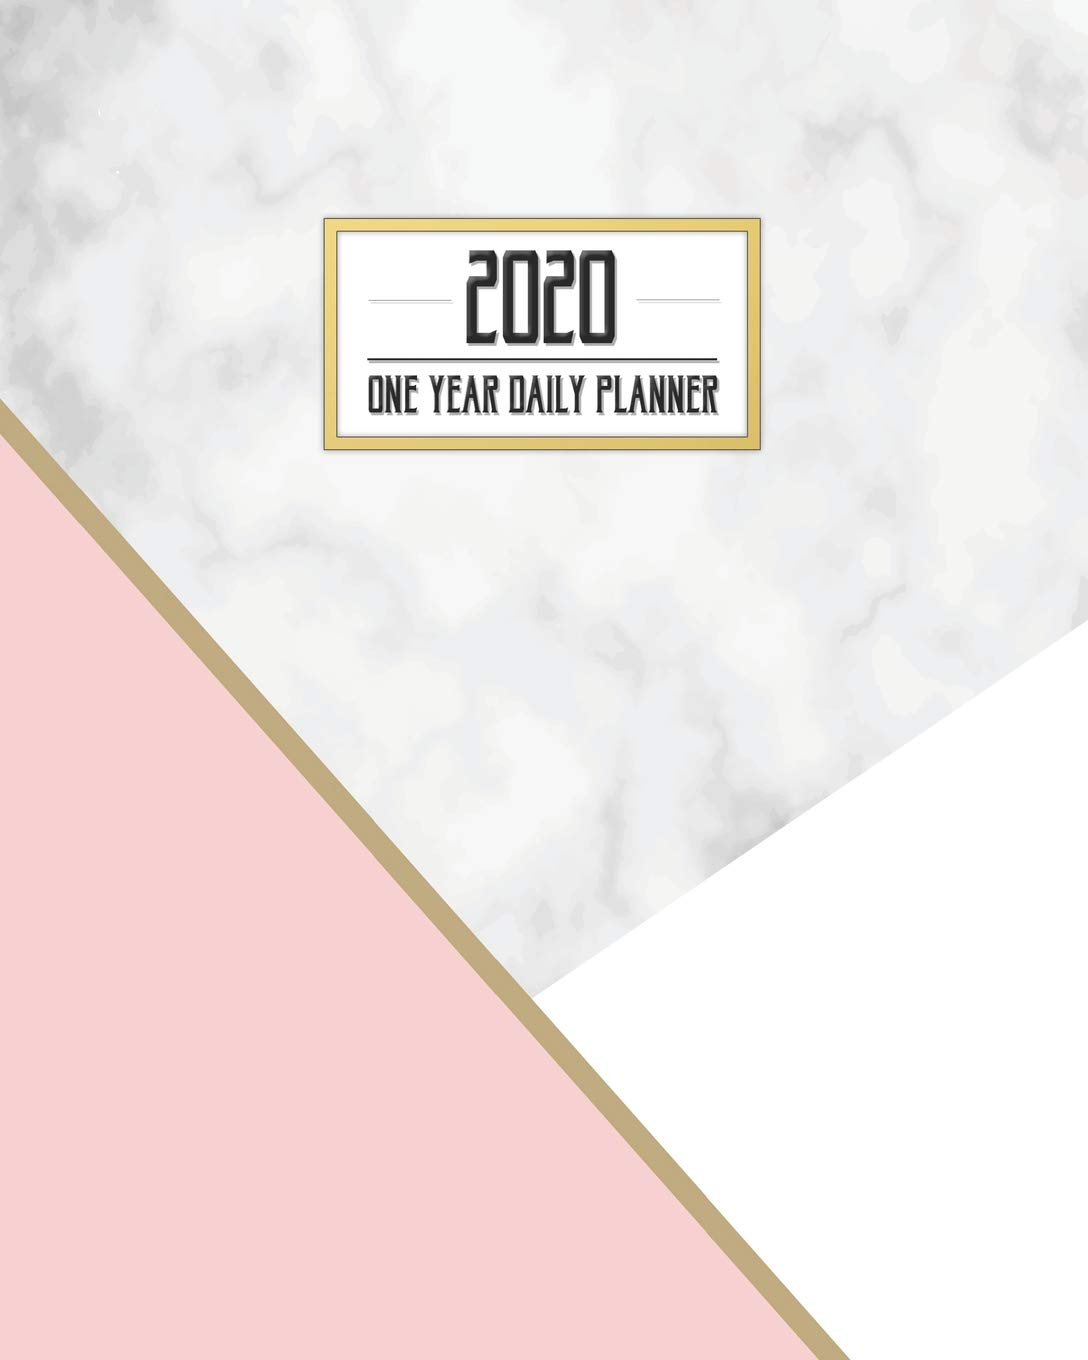 2020 One Year Daily Planner: Elegant Pink Gold White Marble ...